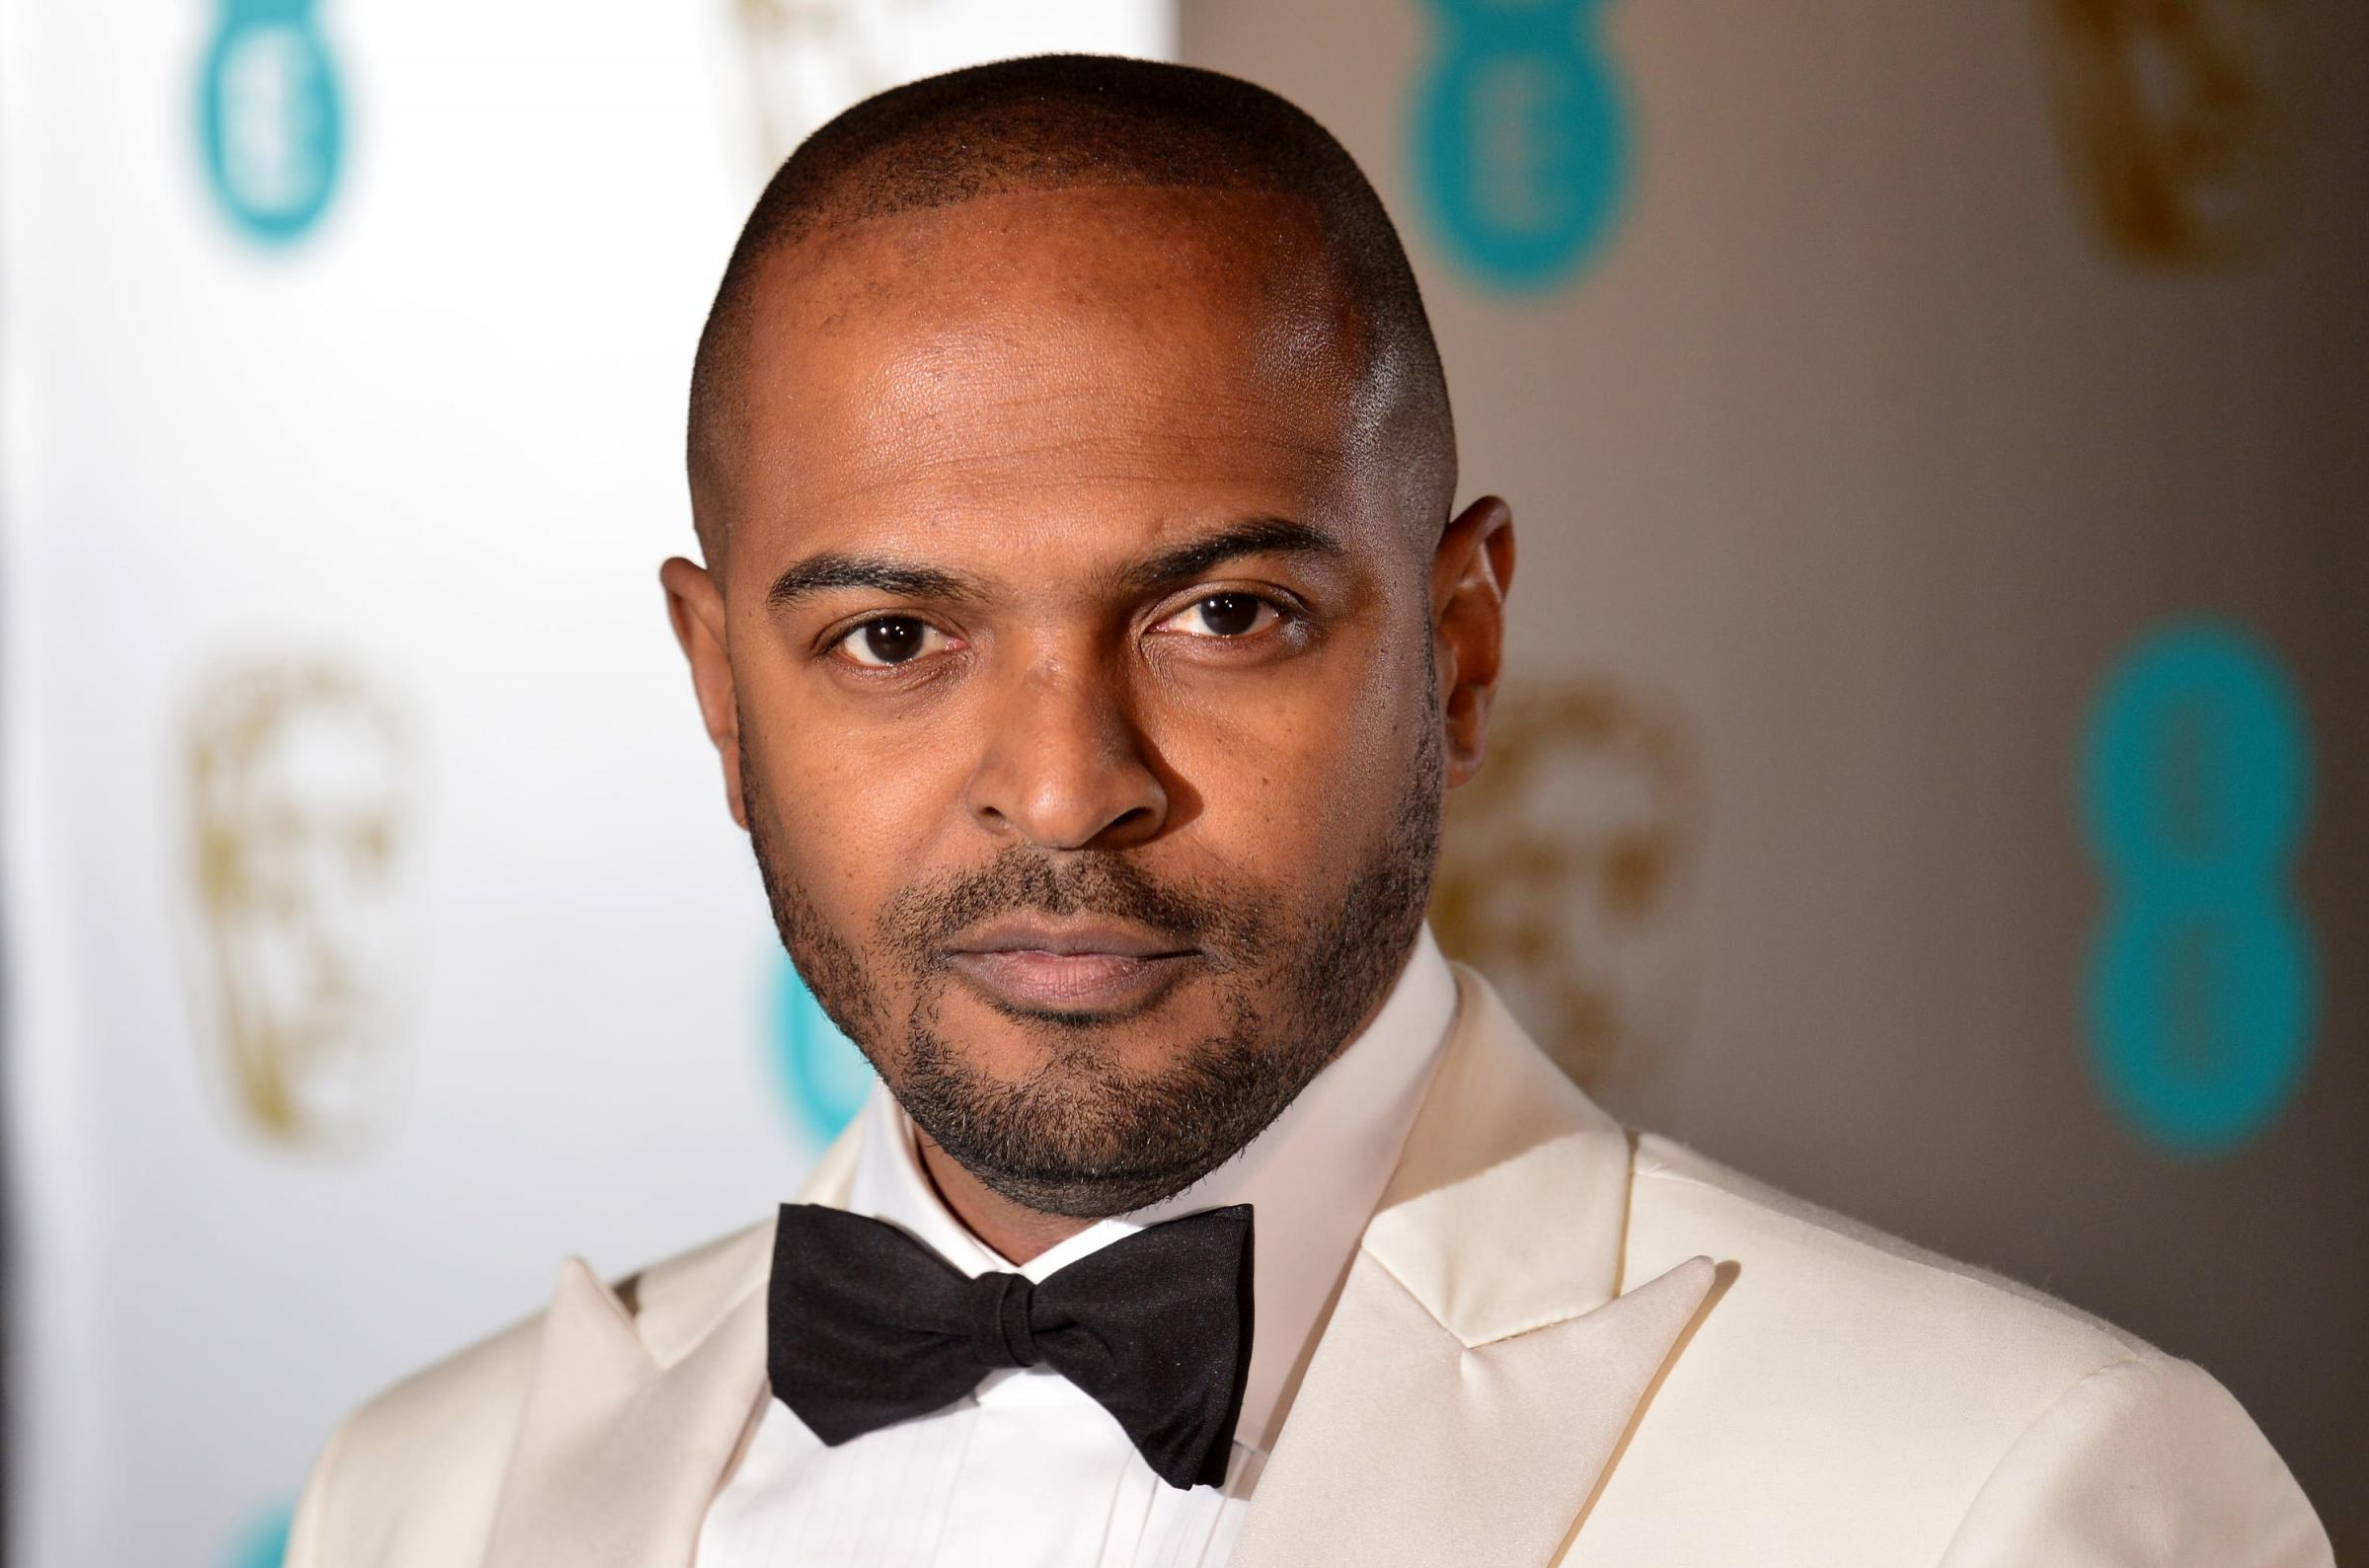 Noel Clarke accused of sexual harassment at local Comic Con event